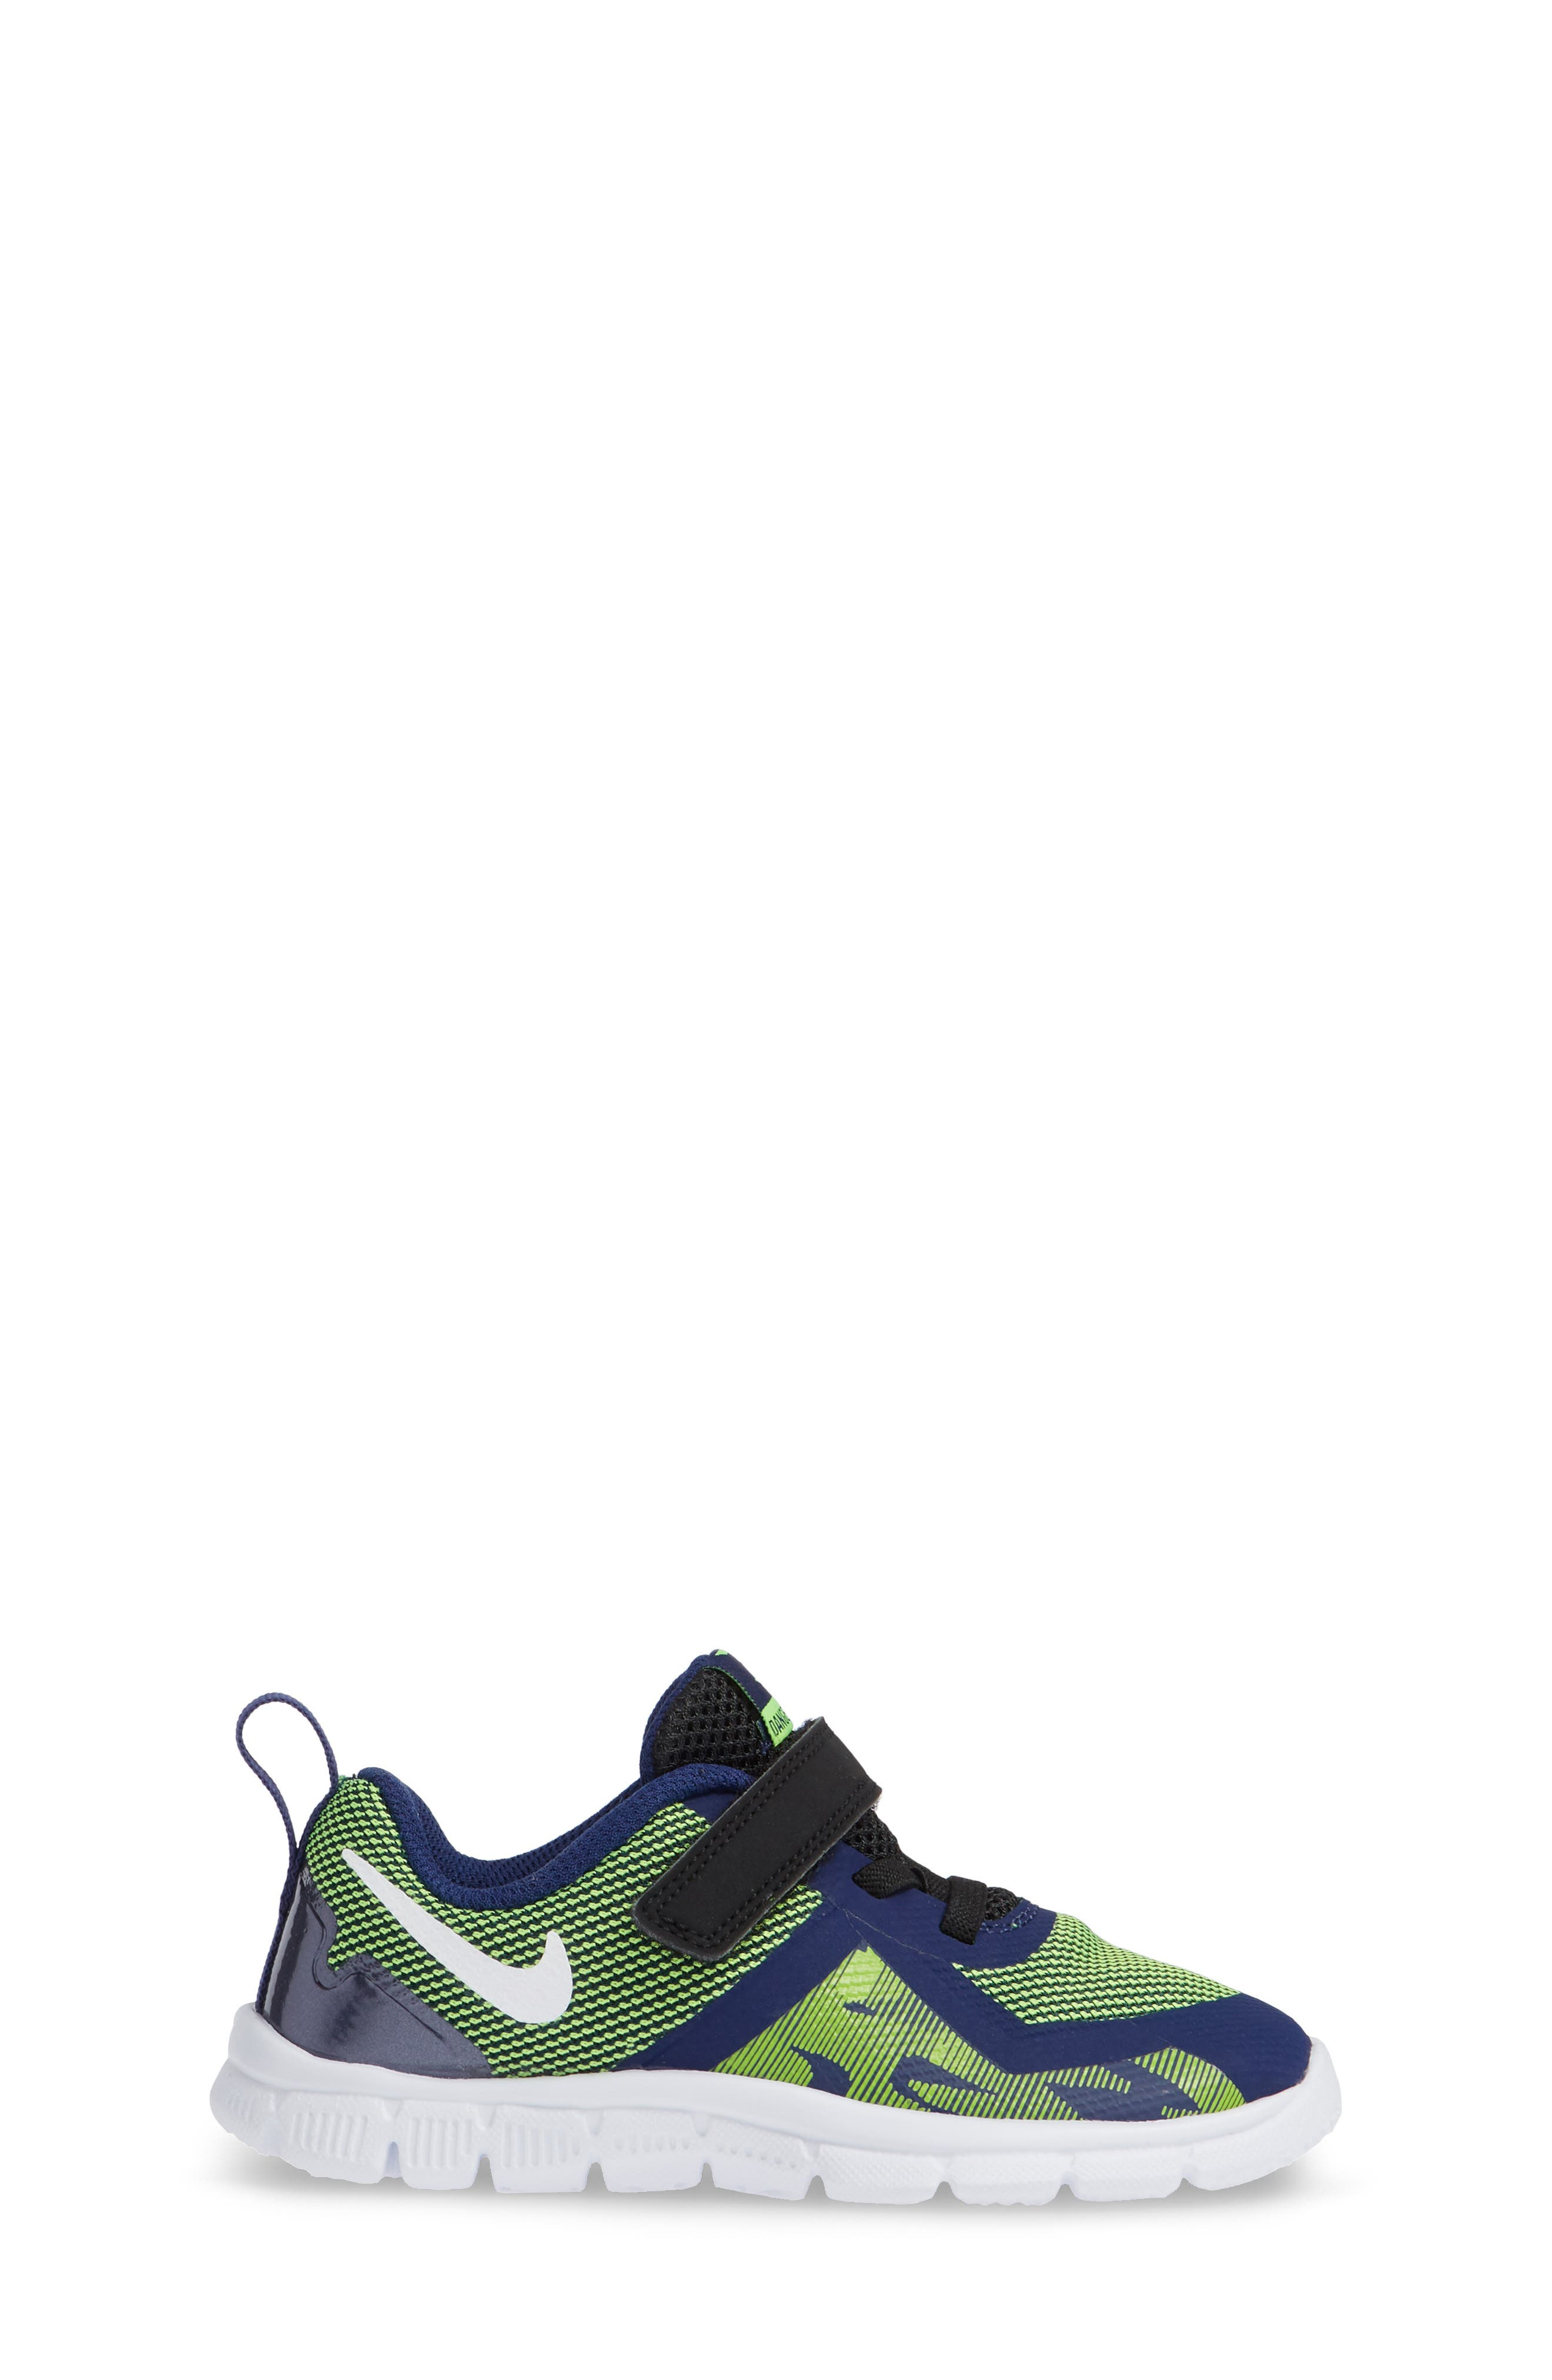 Flex Control II Training Shoe,                             Alternate thumbnail 3, color,                             BLUE/ WHITE/ ELECTRIC GREEN